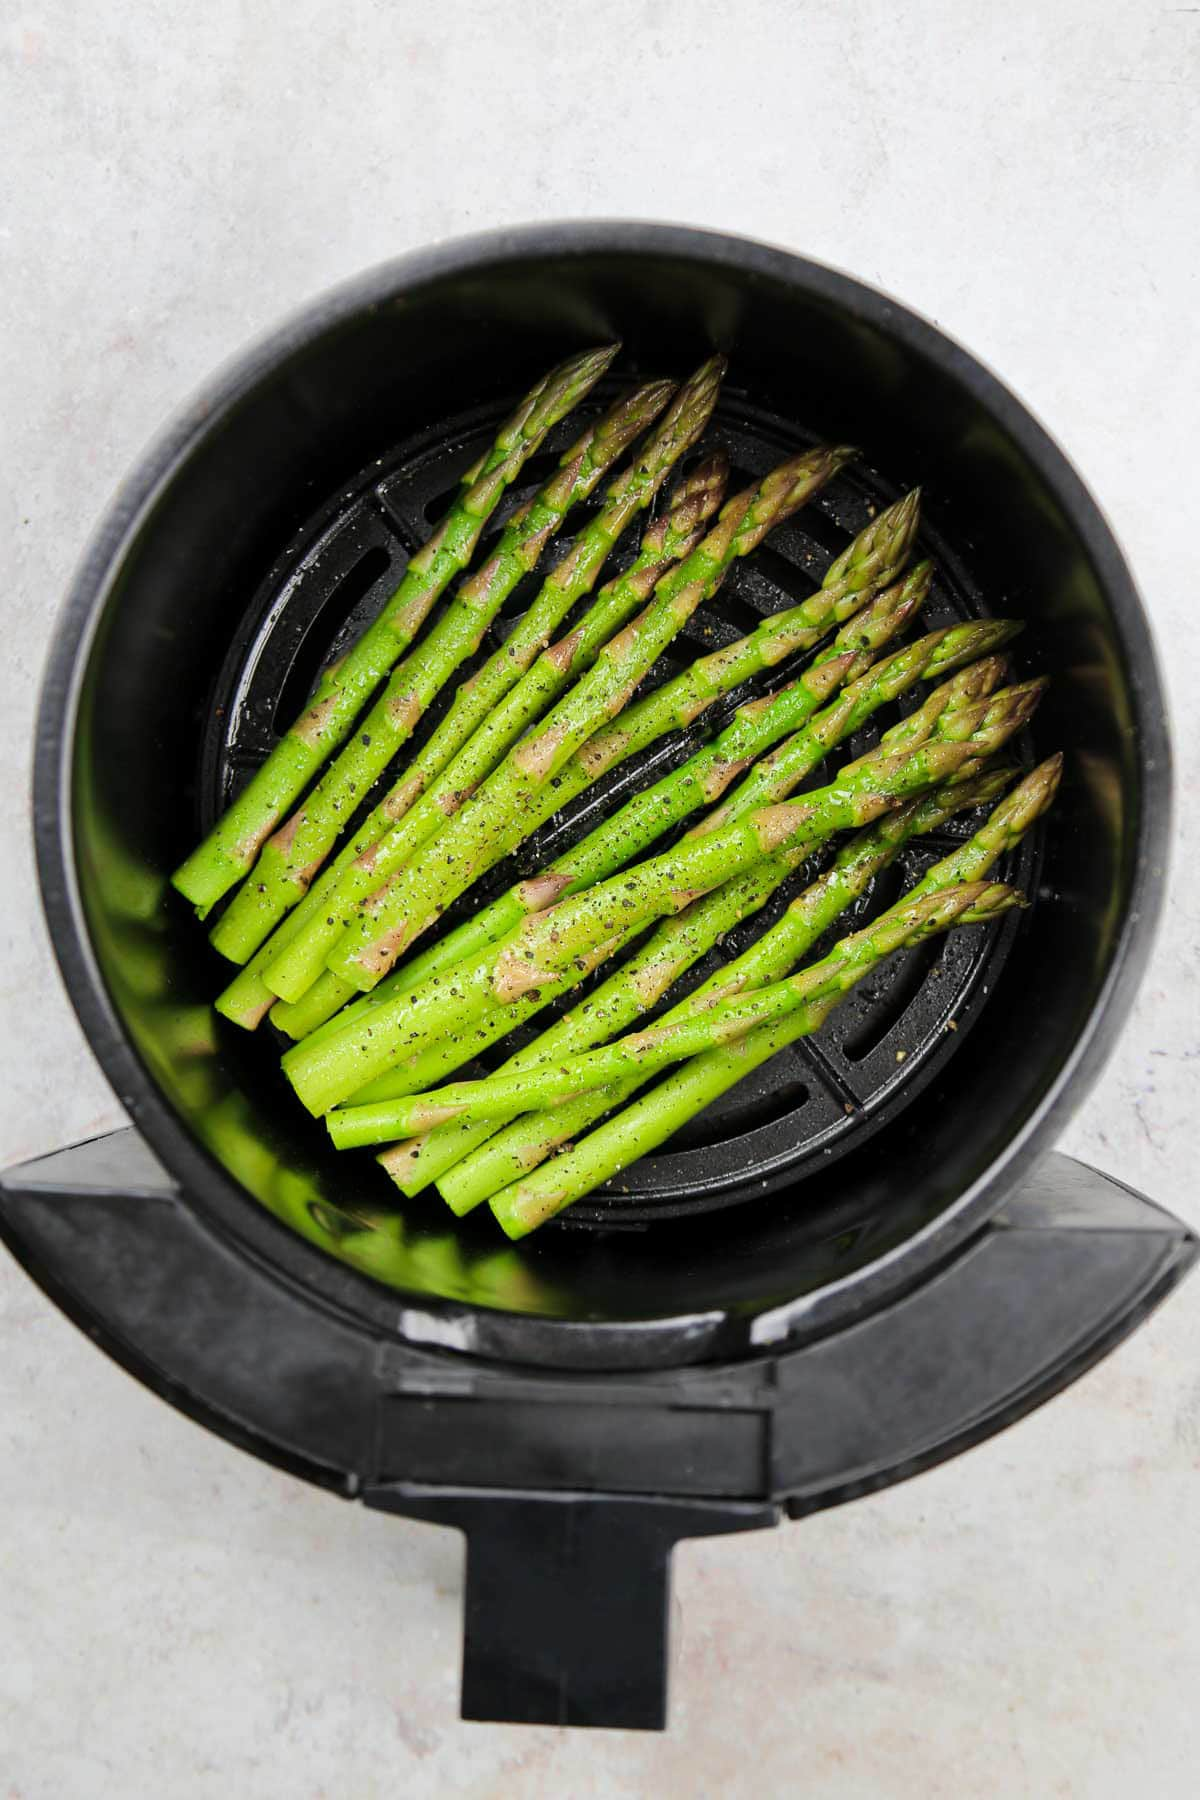 Seasoned and oil-sprayed asparagus tips in the air fryer basket.